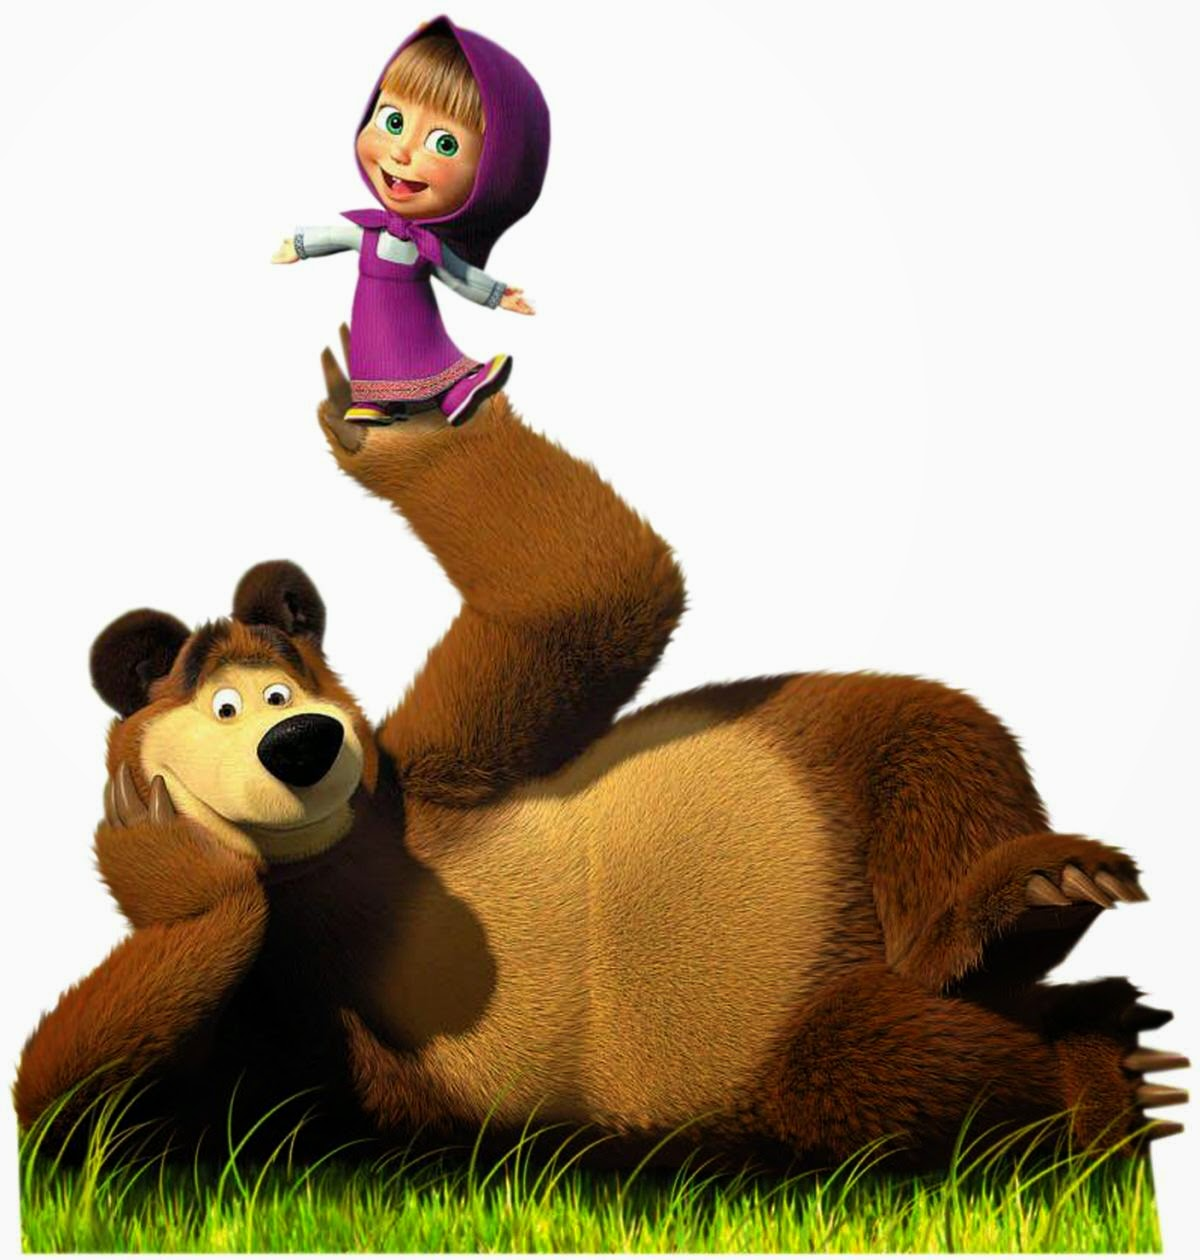 GAMBAR BONEKA MASHA AND THE BEAR LUCU Gambar Masha And The Bear